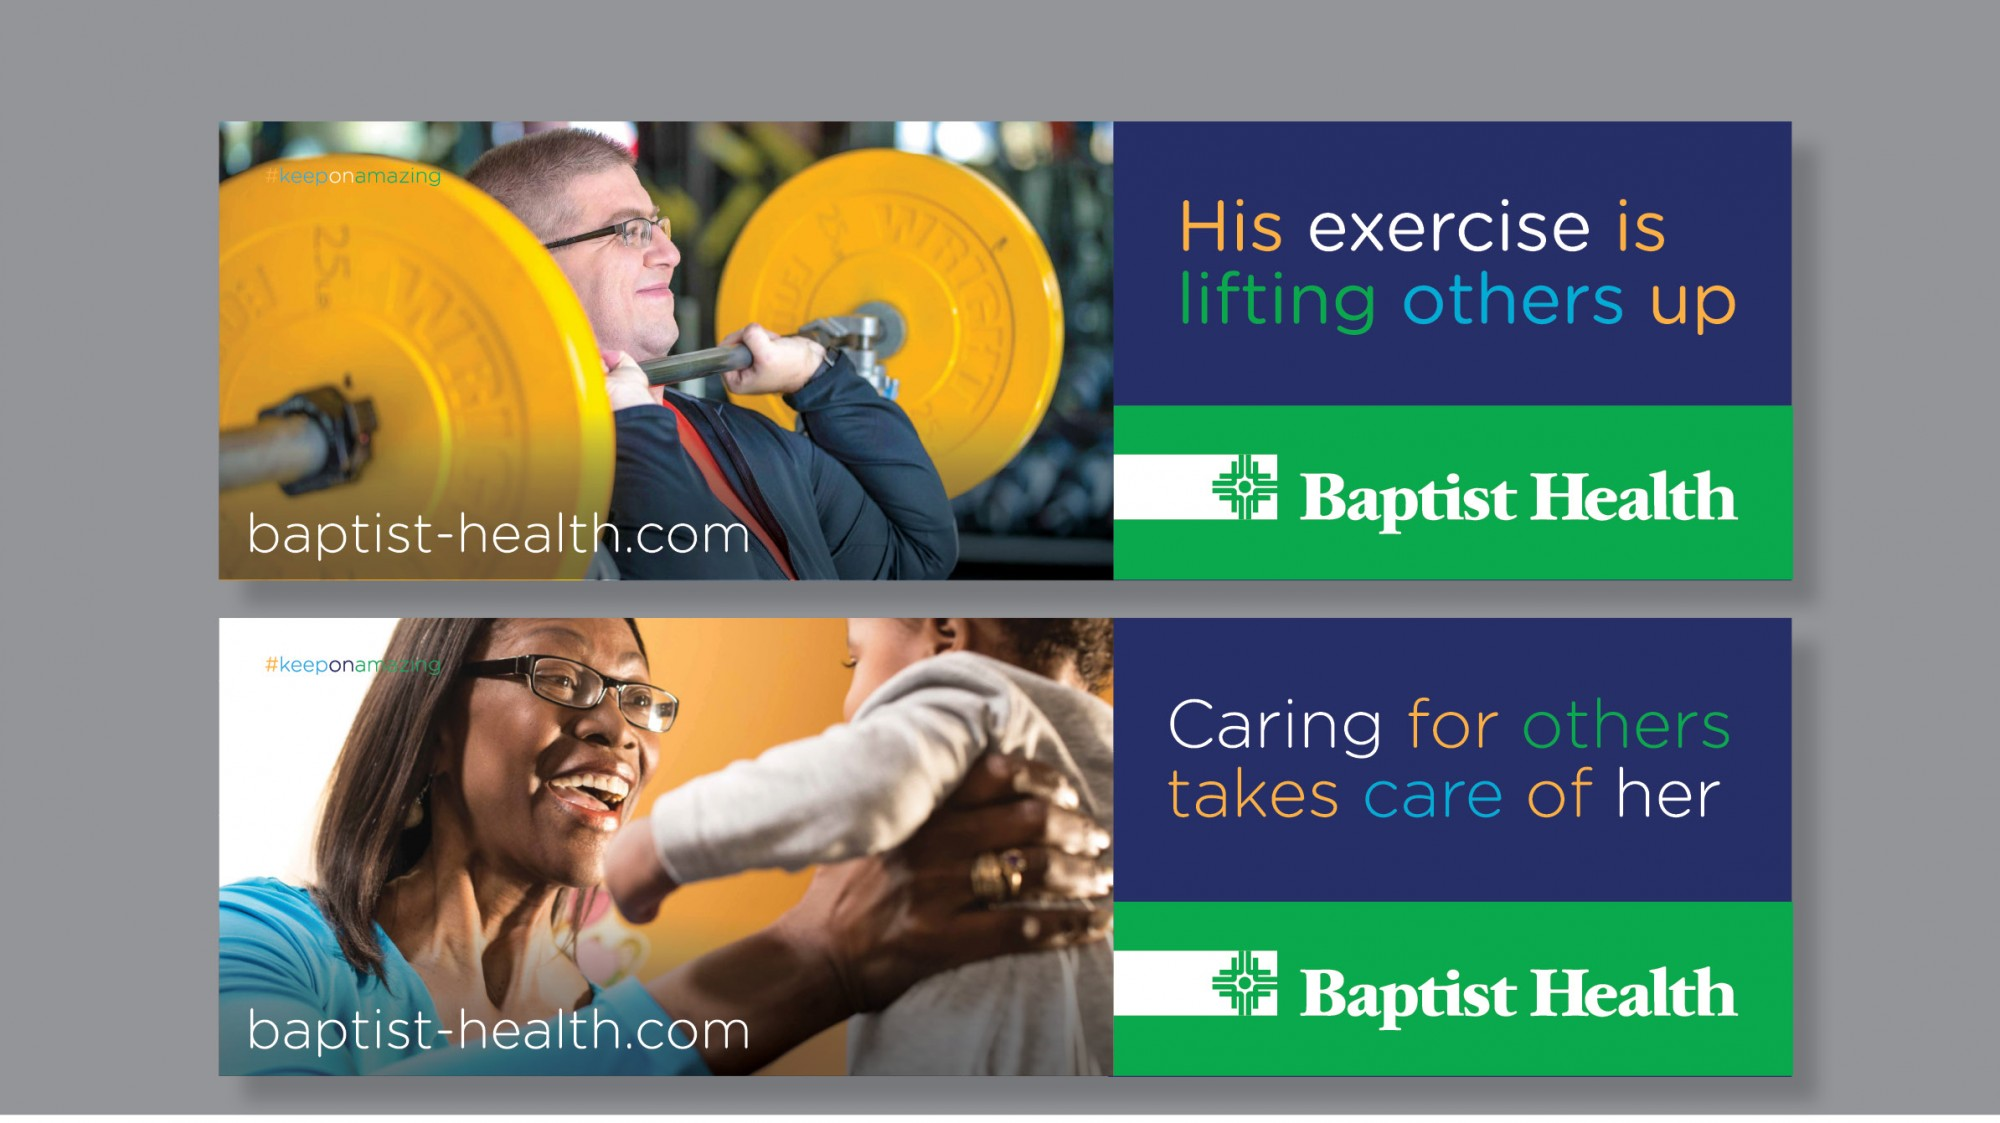 Baptist Health's Keep on Amazing Outdoor Campaign Designed by Stone Ward